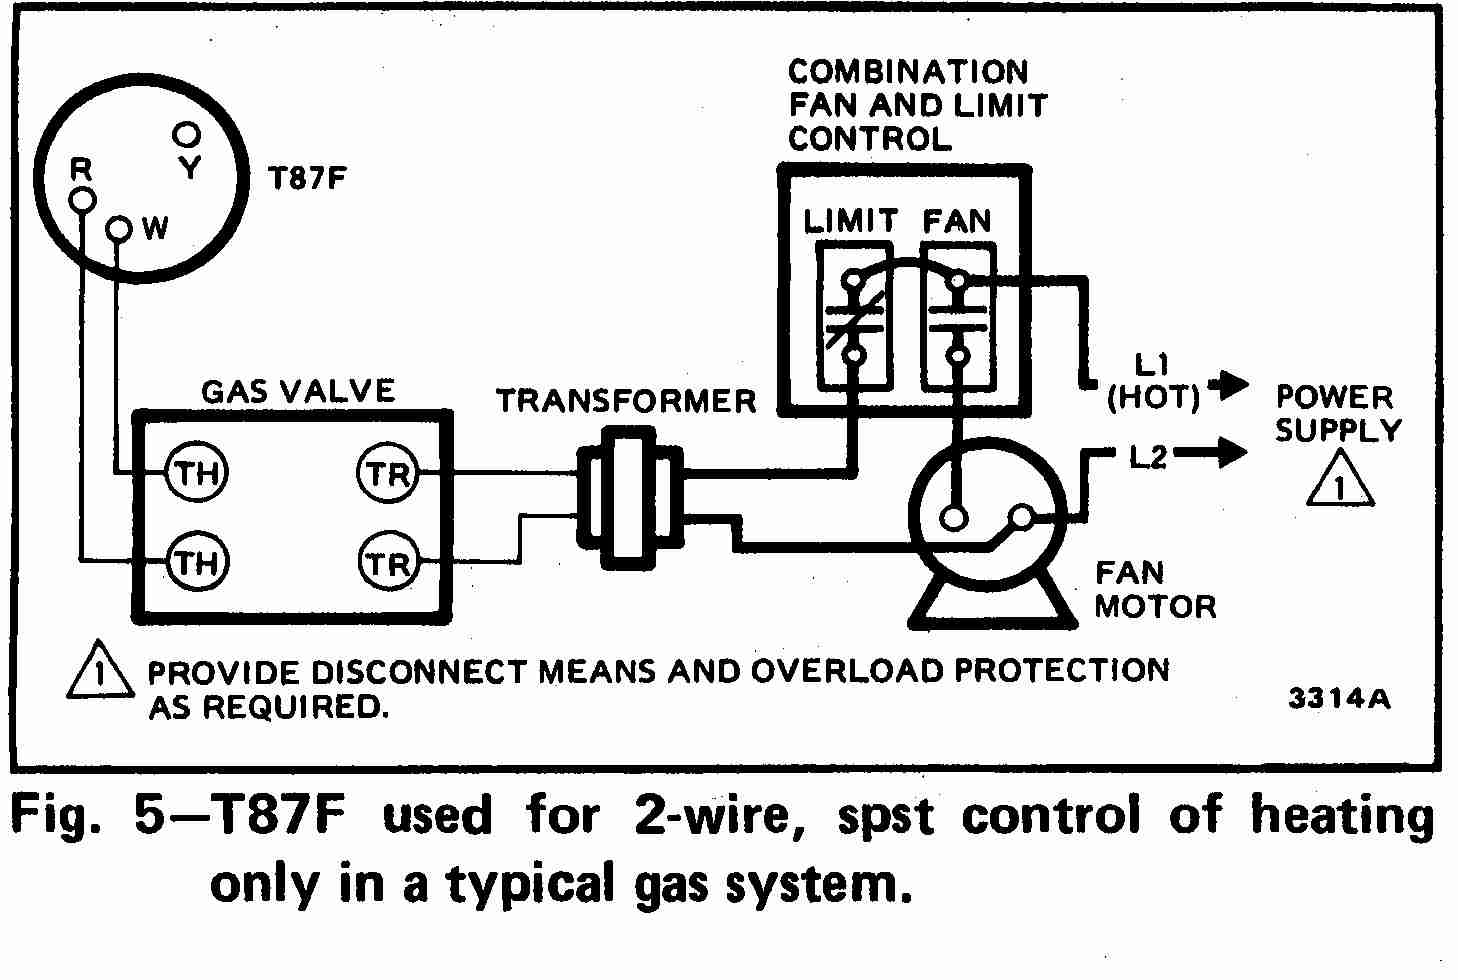 TT_T87F_0002_2Wg_DJF room thermostat wiring diagrams for hvac systems dayton gas unit heater wiring diagram at alyssarenee.co